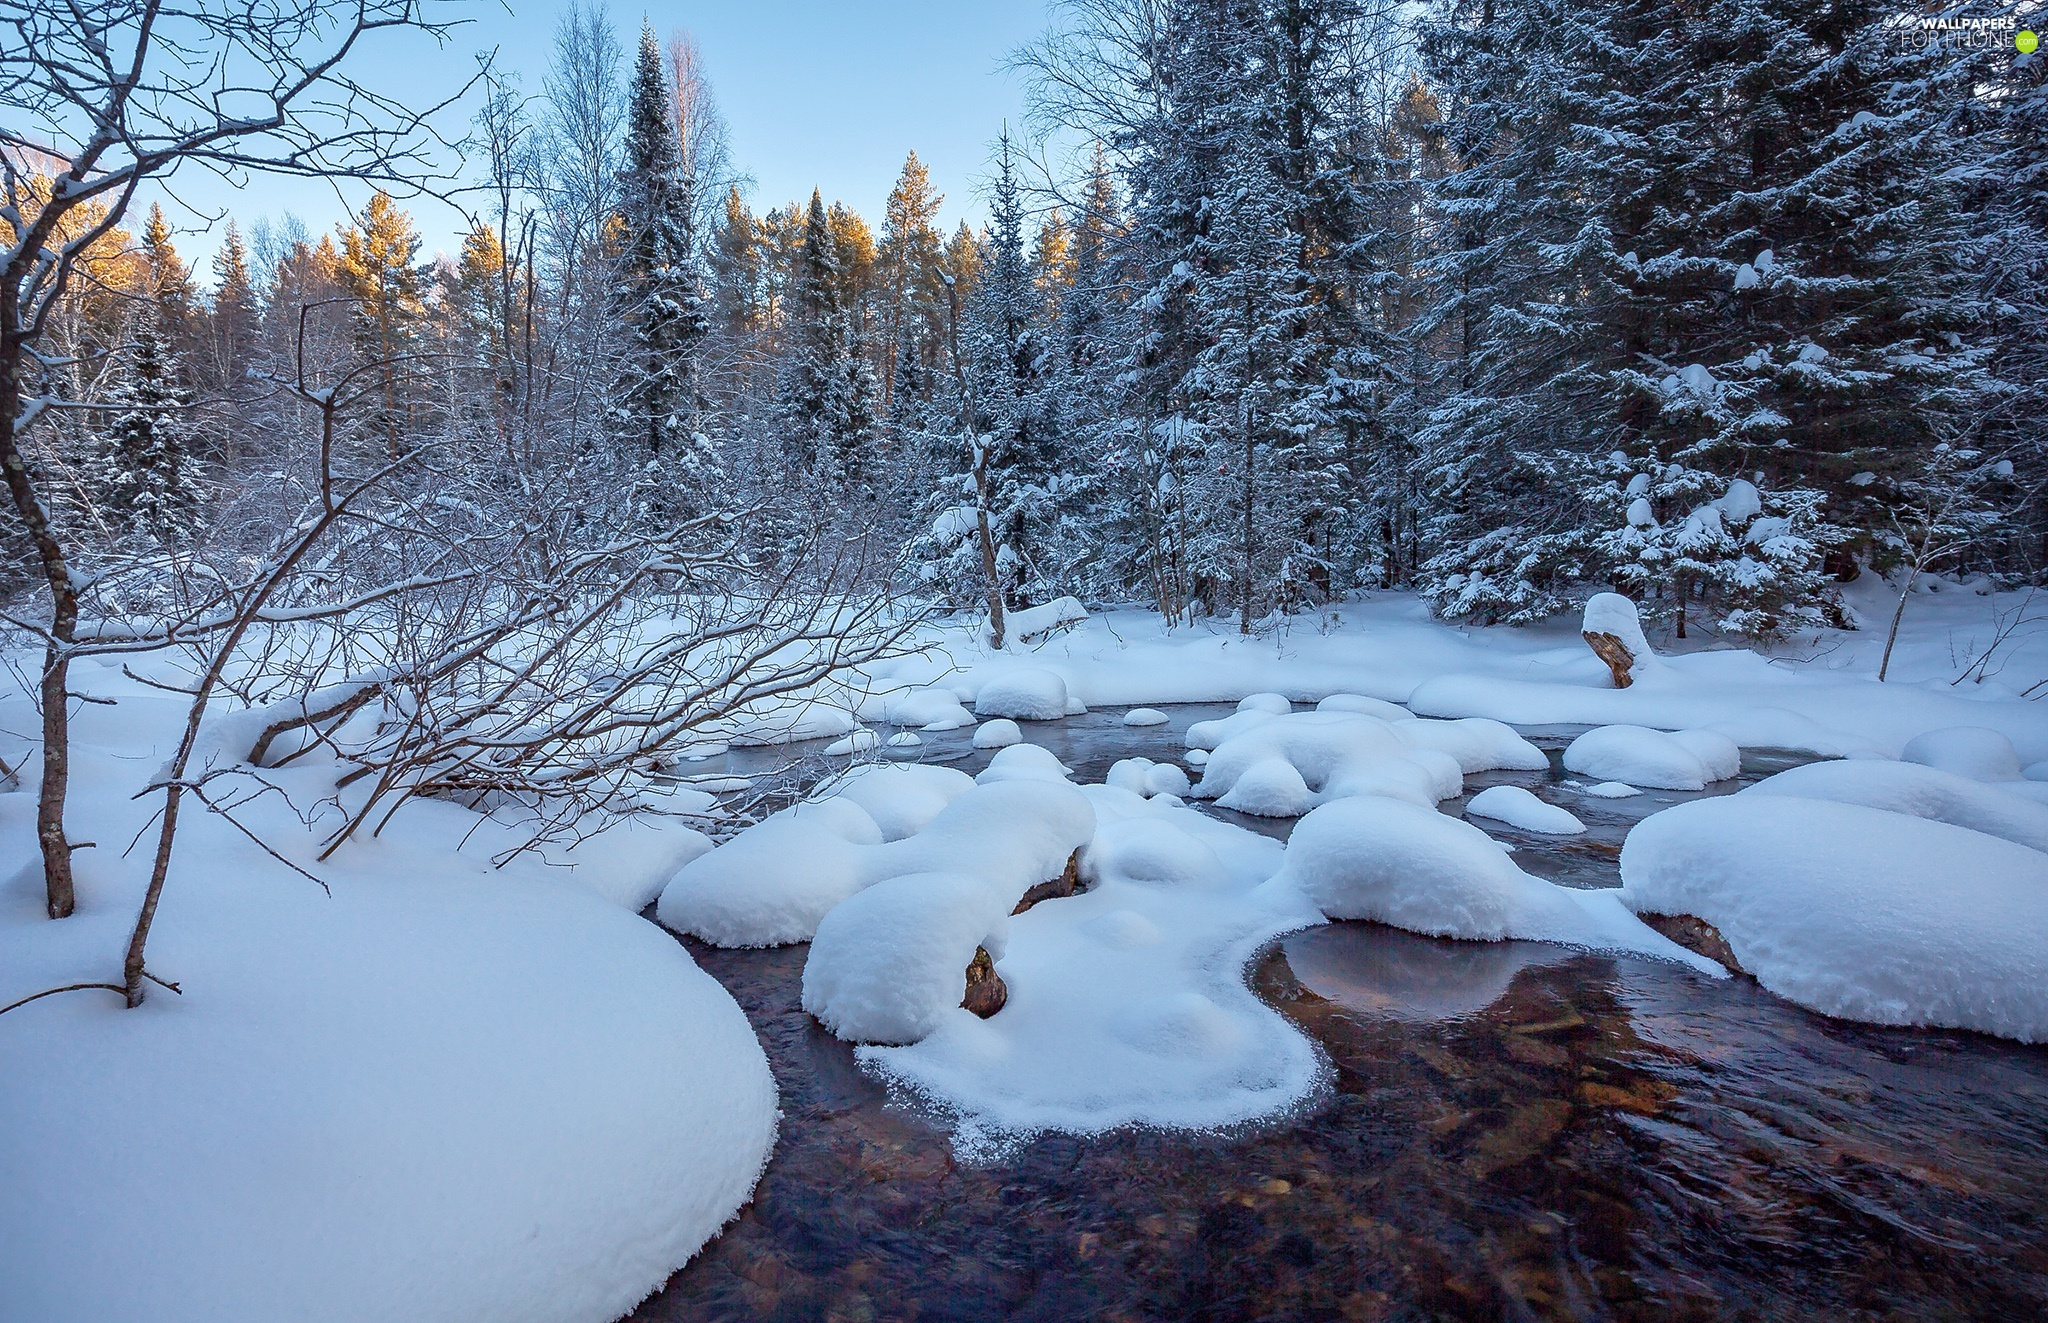 forest, winter, viewes, River, trees, snowy